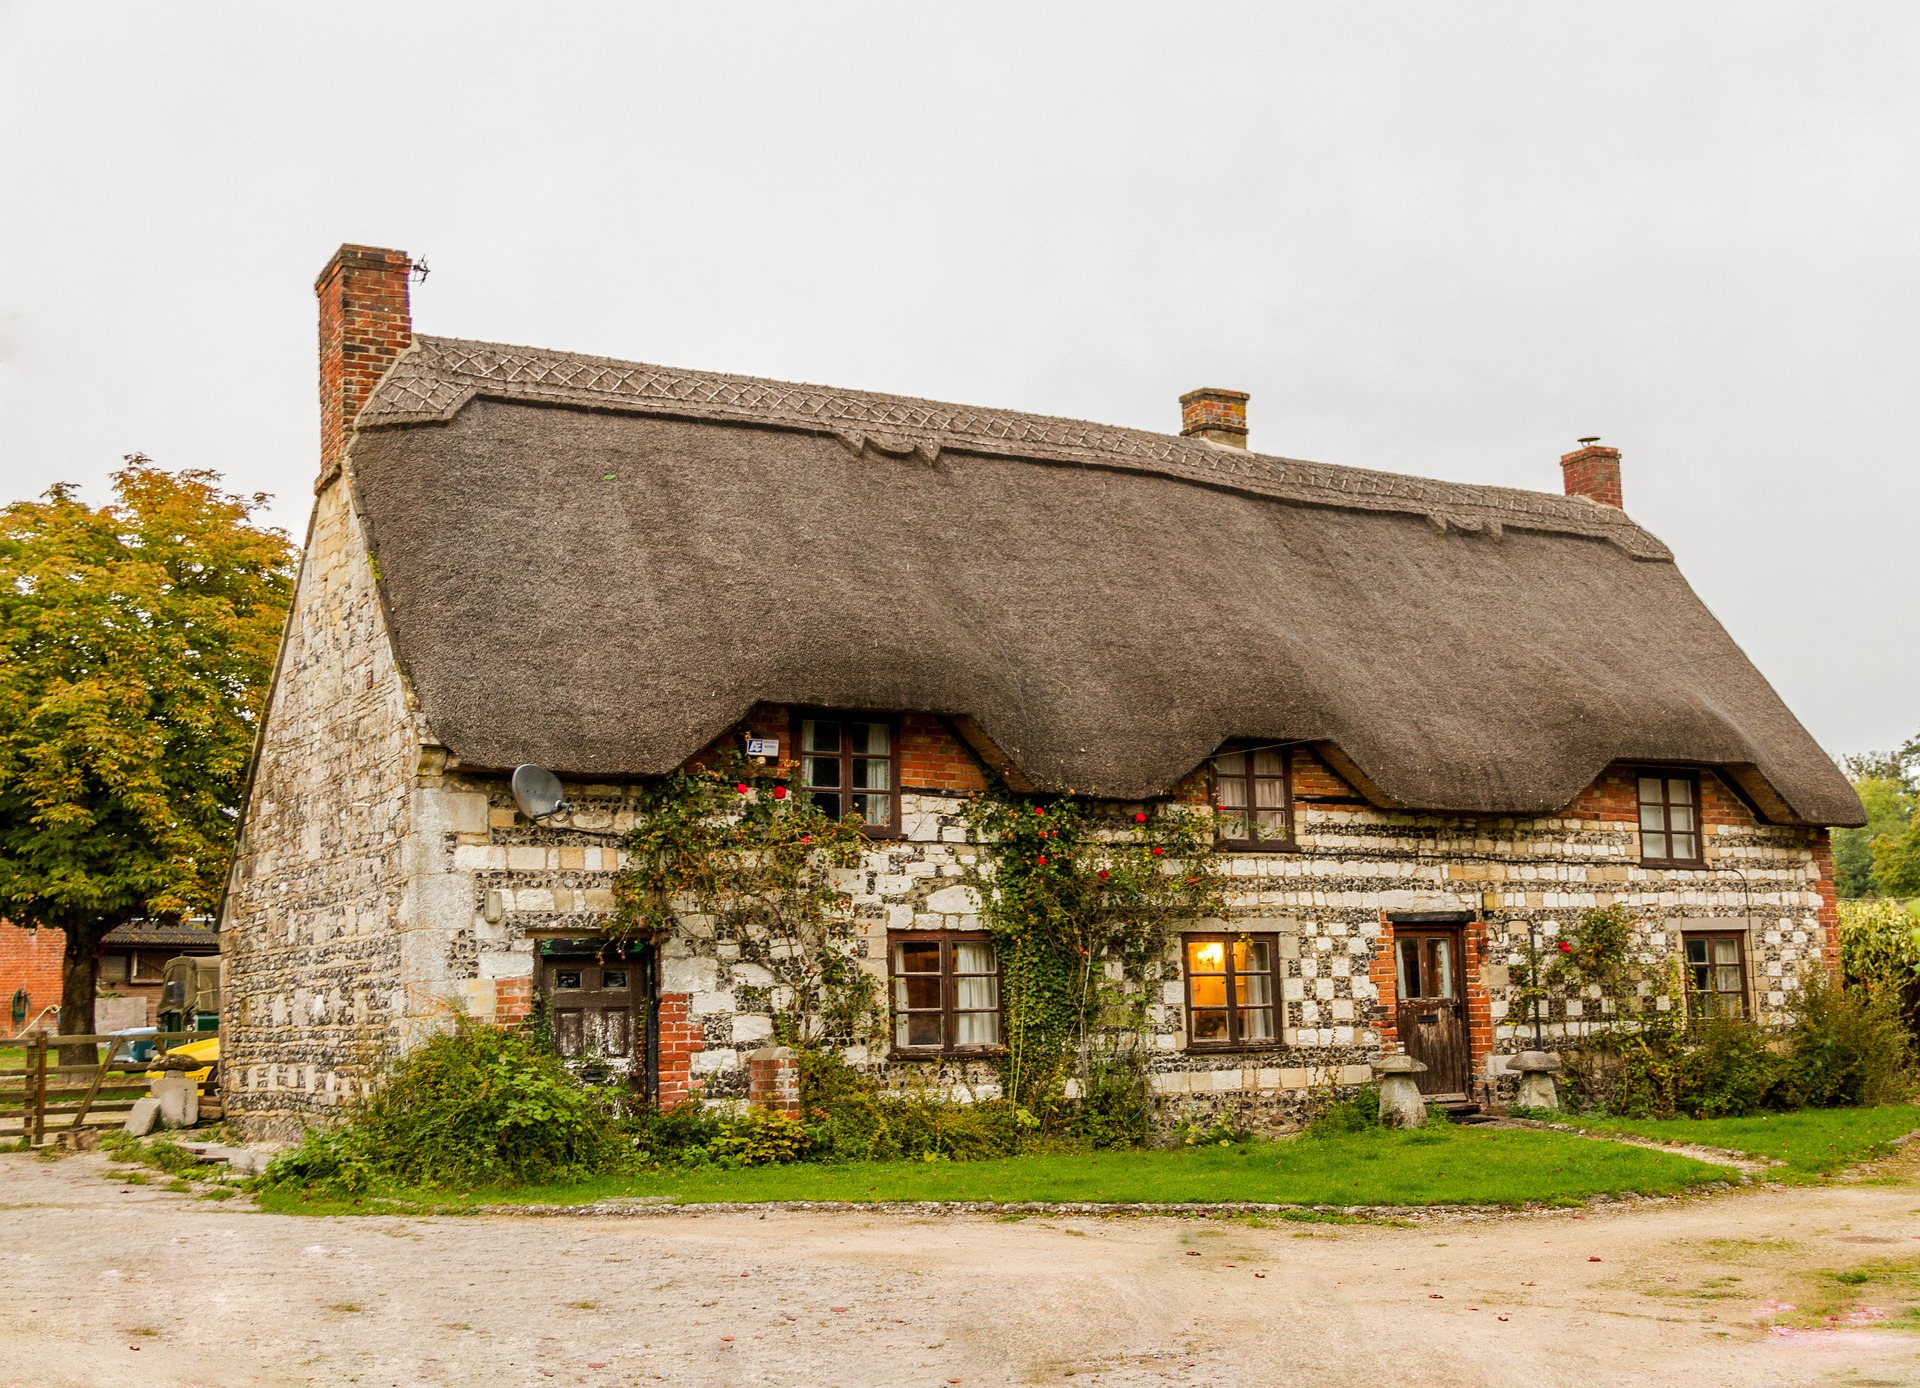 Is a Thatched Roof Property Suitable If You Have a Disability?